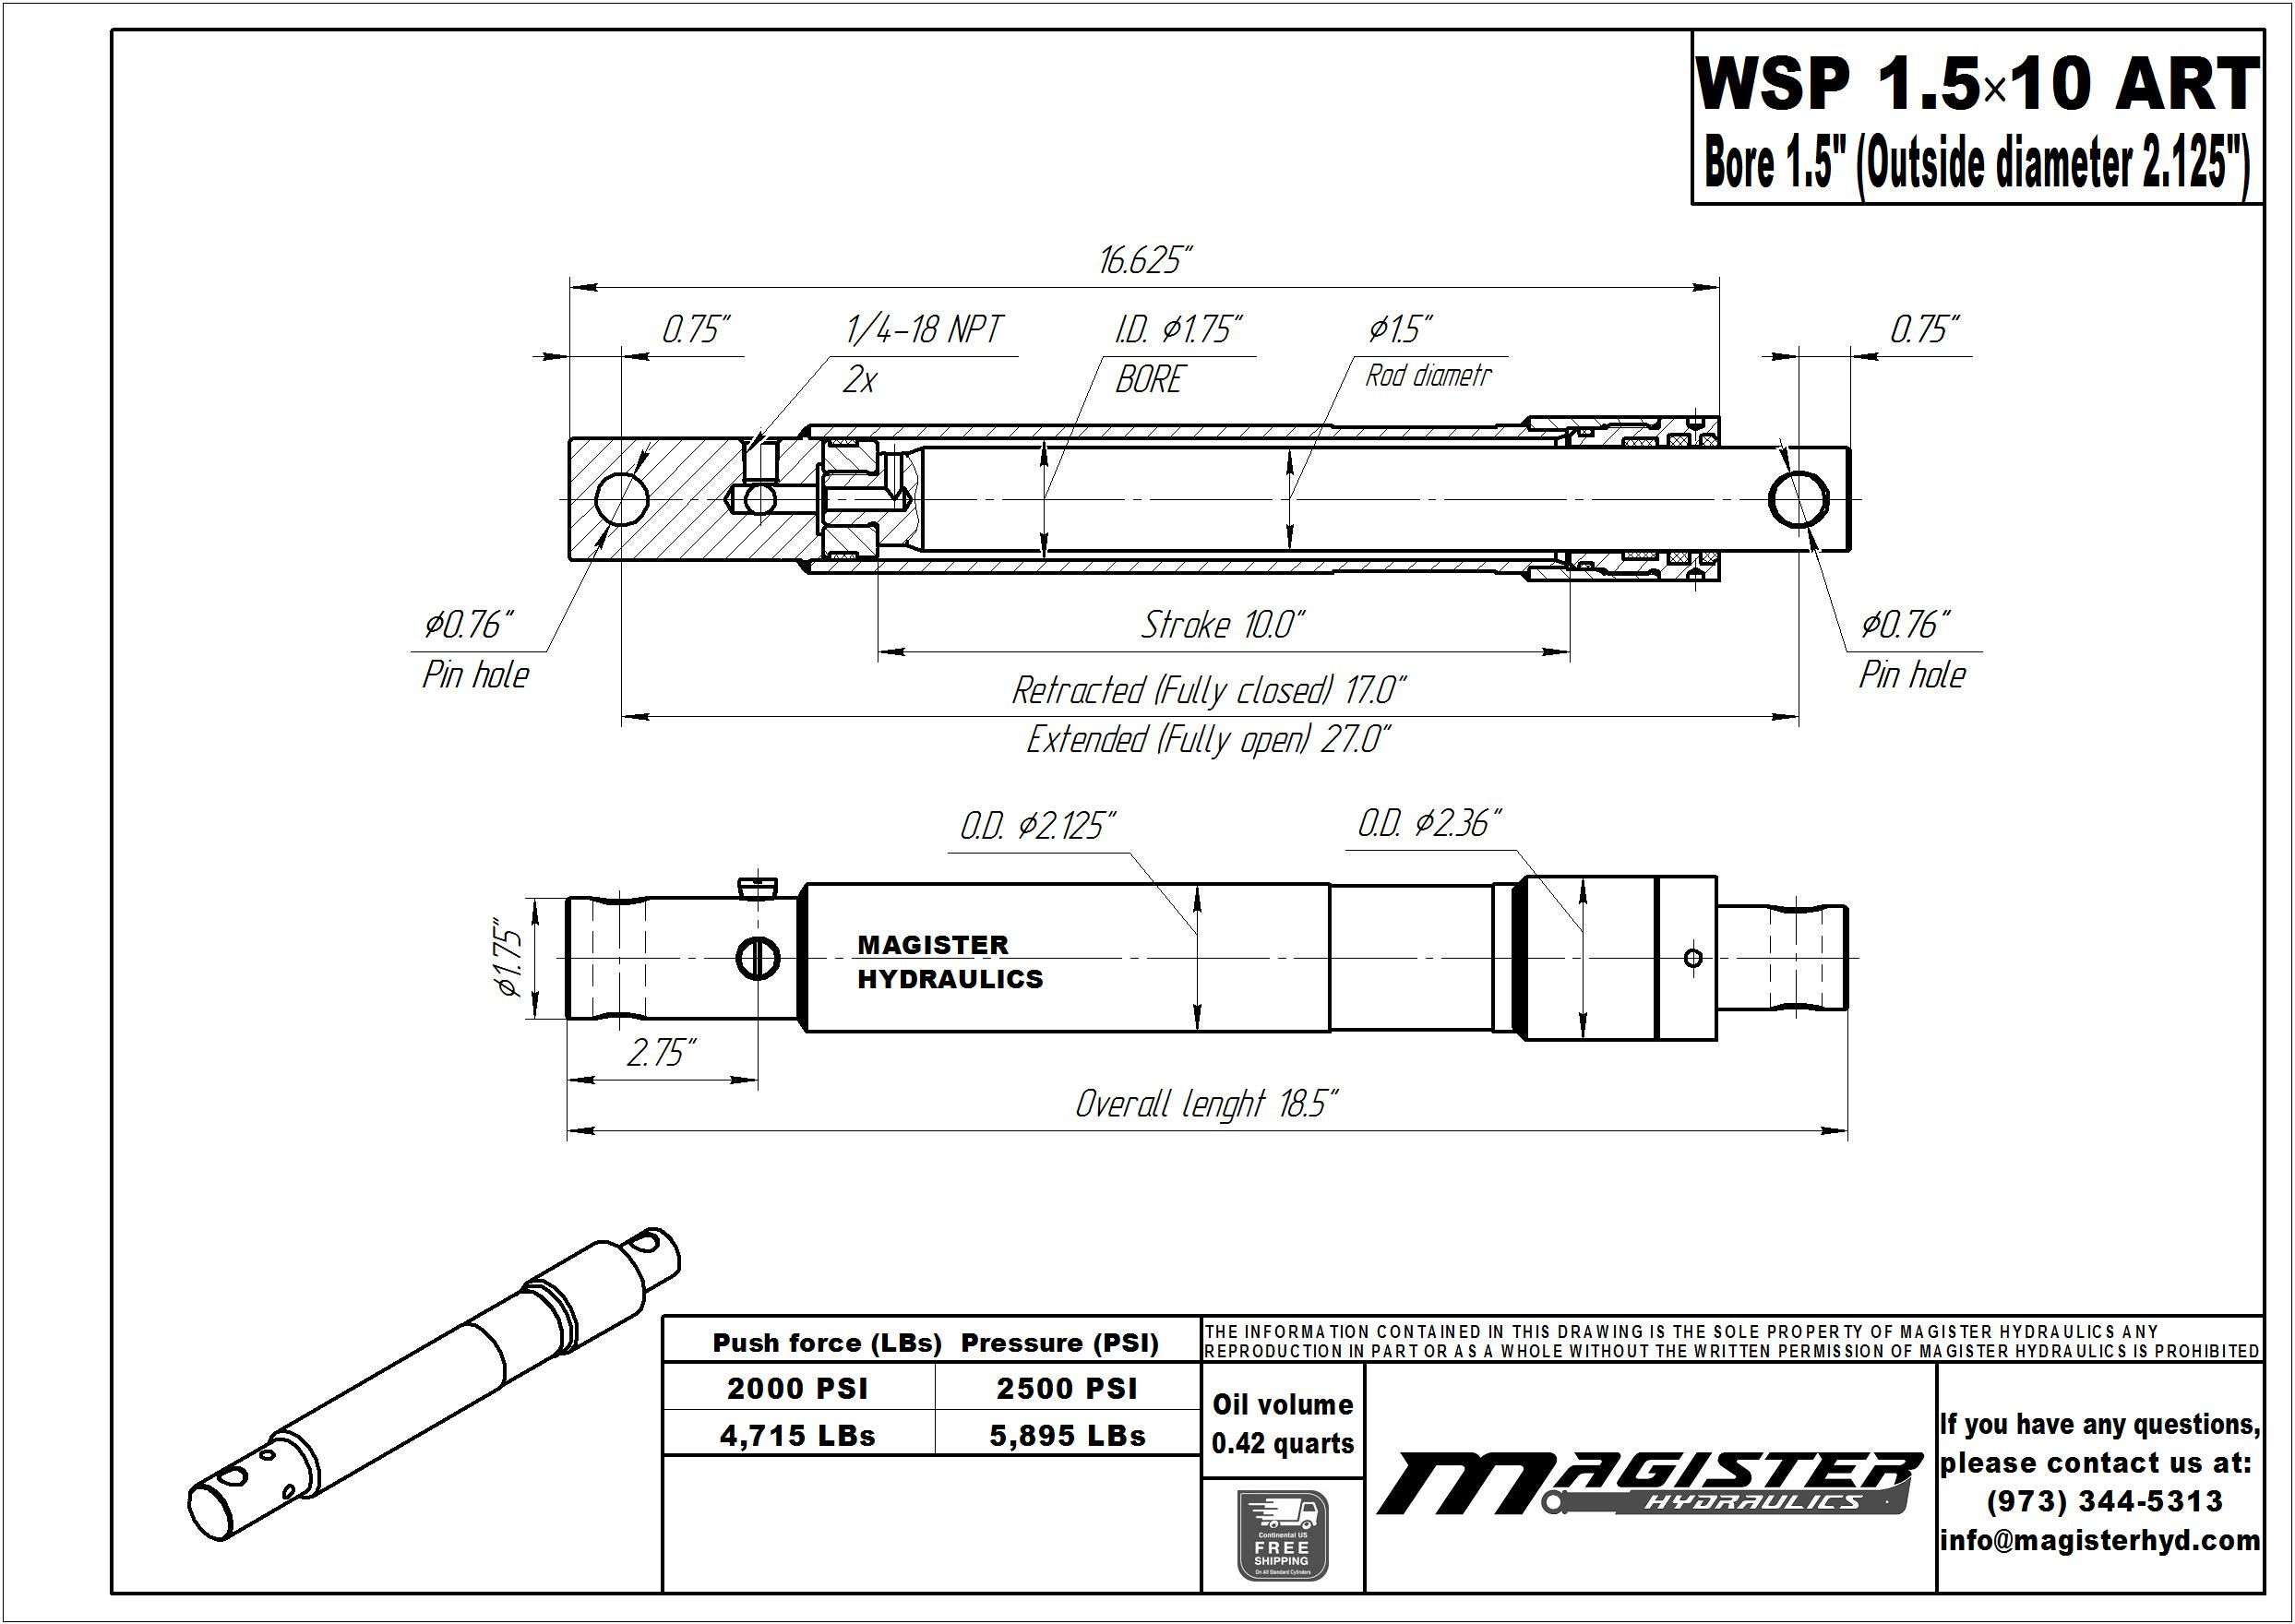 1.5 bore x 10 stroke hydraulic cylinder Arctic, welded snow plow single acting cylinder | Magister Hydraulics